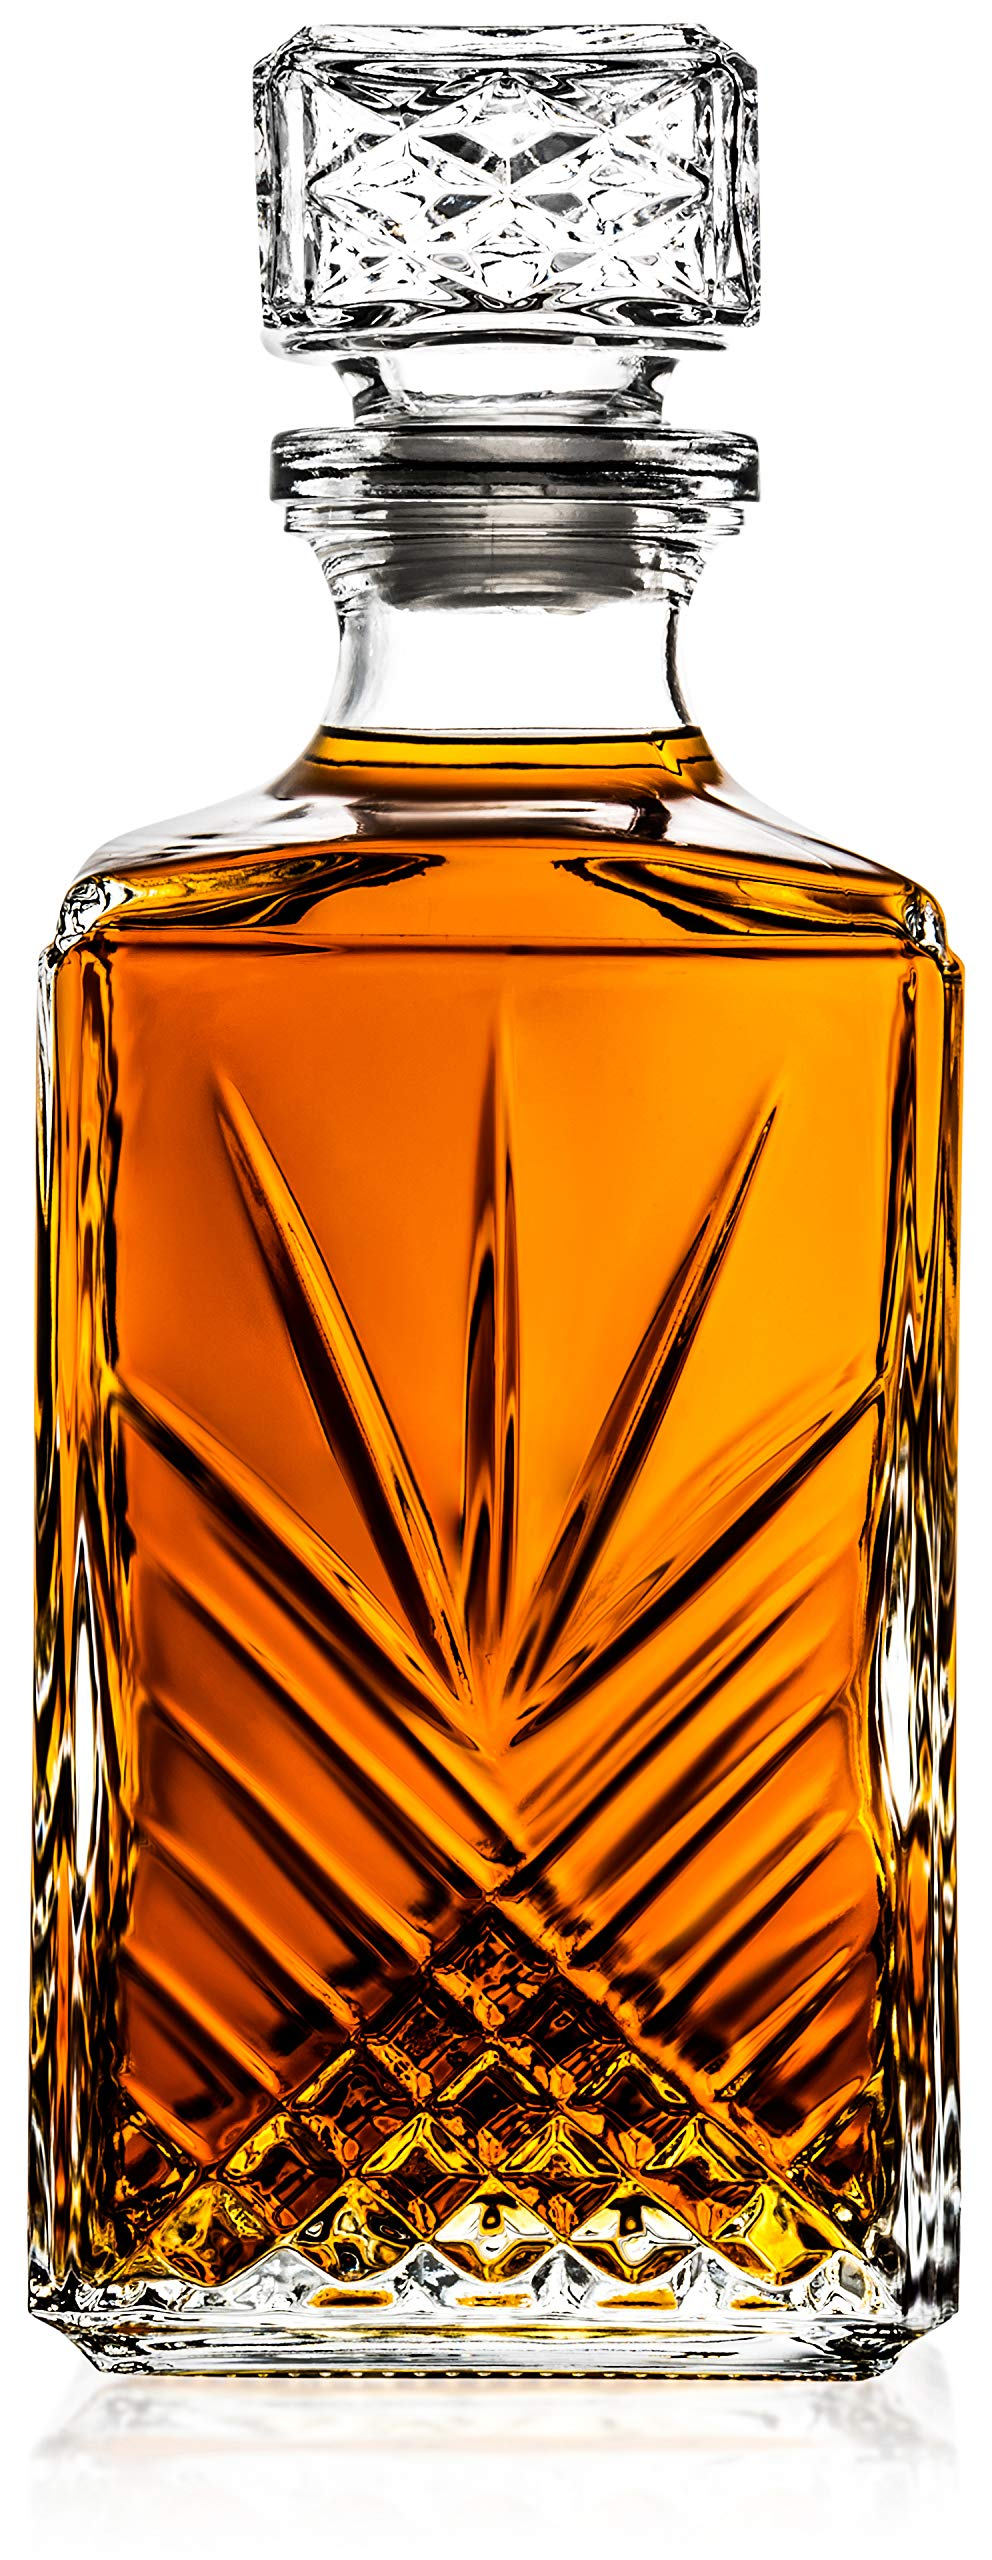 Italian Made Glass Whiskey Decanter – For Liquor, Brandy, Vodka and Scotch | with Sophisticated Diamond Design | 33.75oz with Airtight Stopper | Packaged in an Exquisite Gift Box